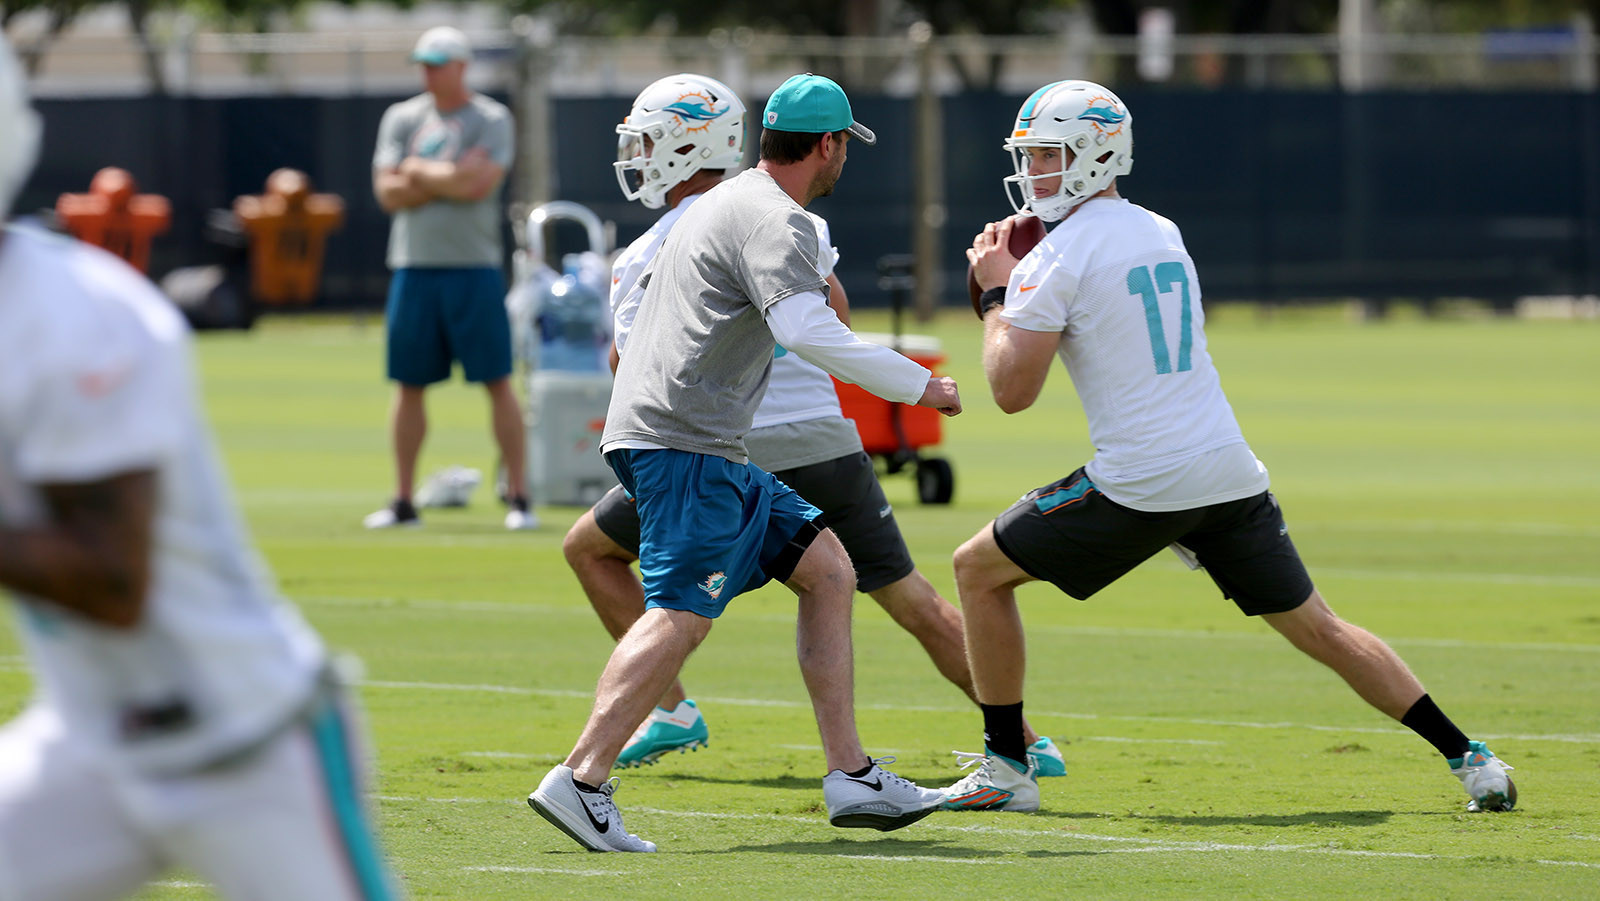 Sfl-dolphins-coach-adam-gase-describes-the-origin-of-his-offensive-system-20160428